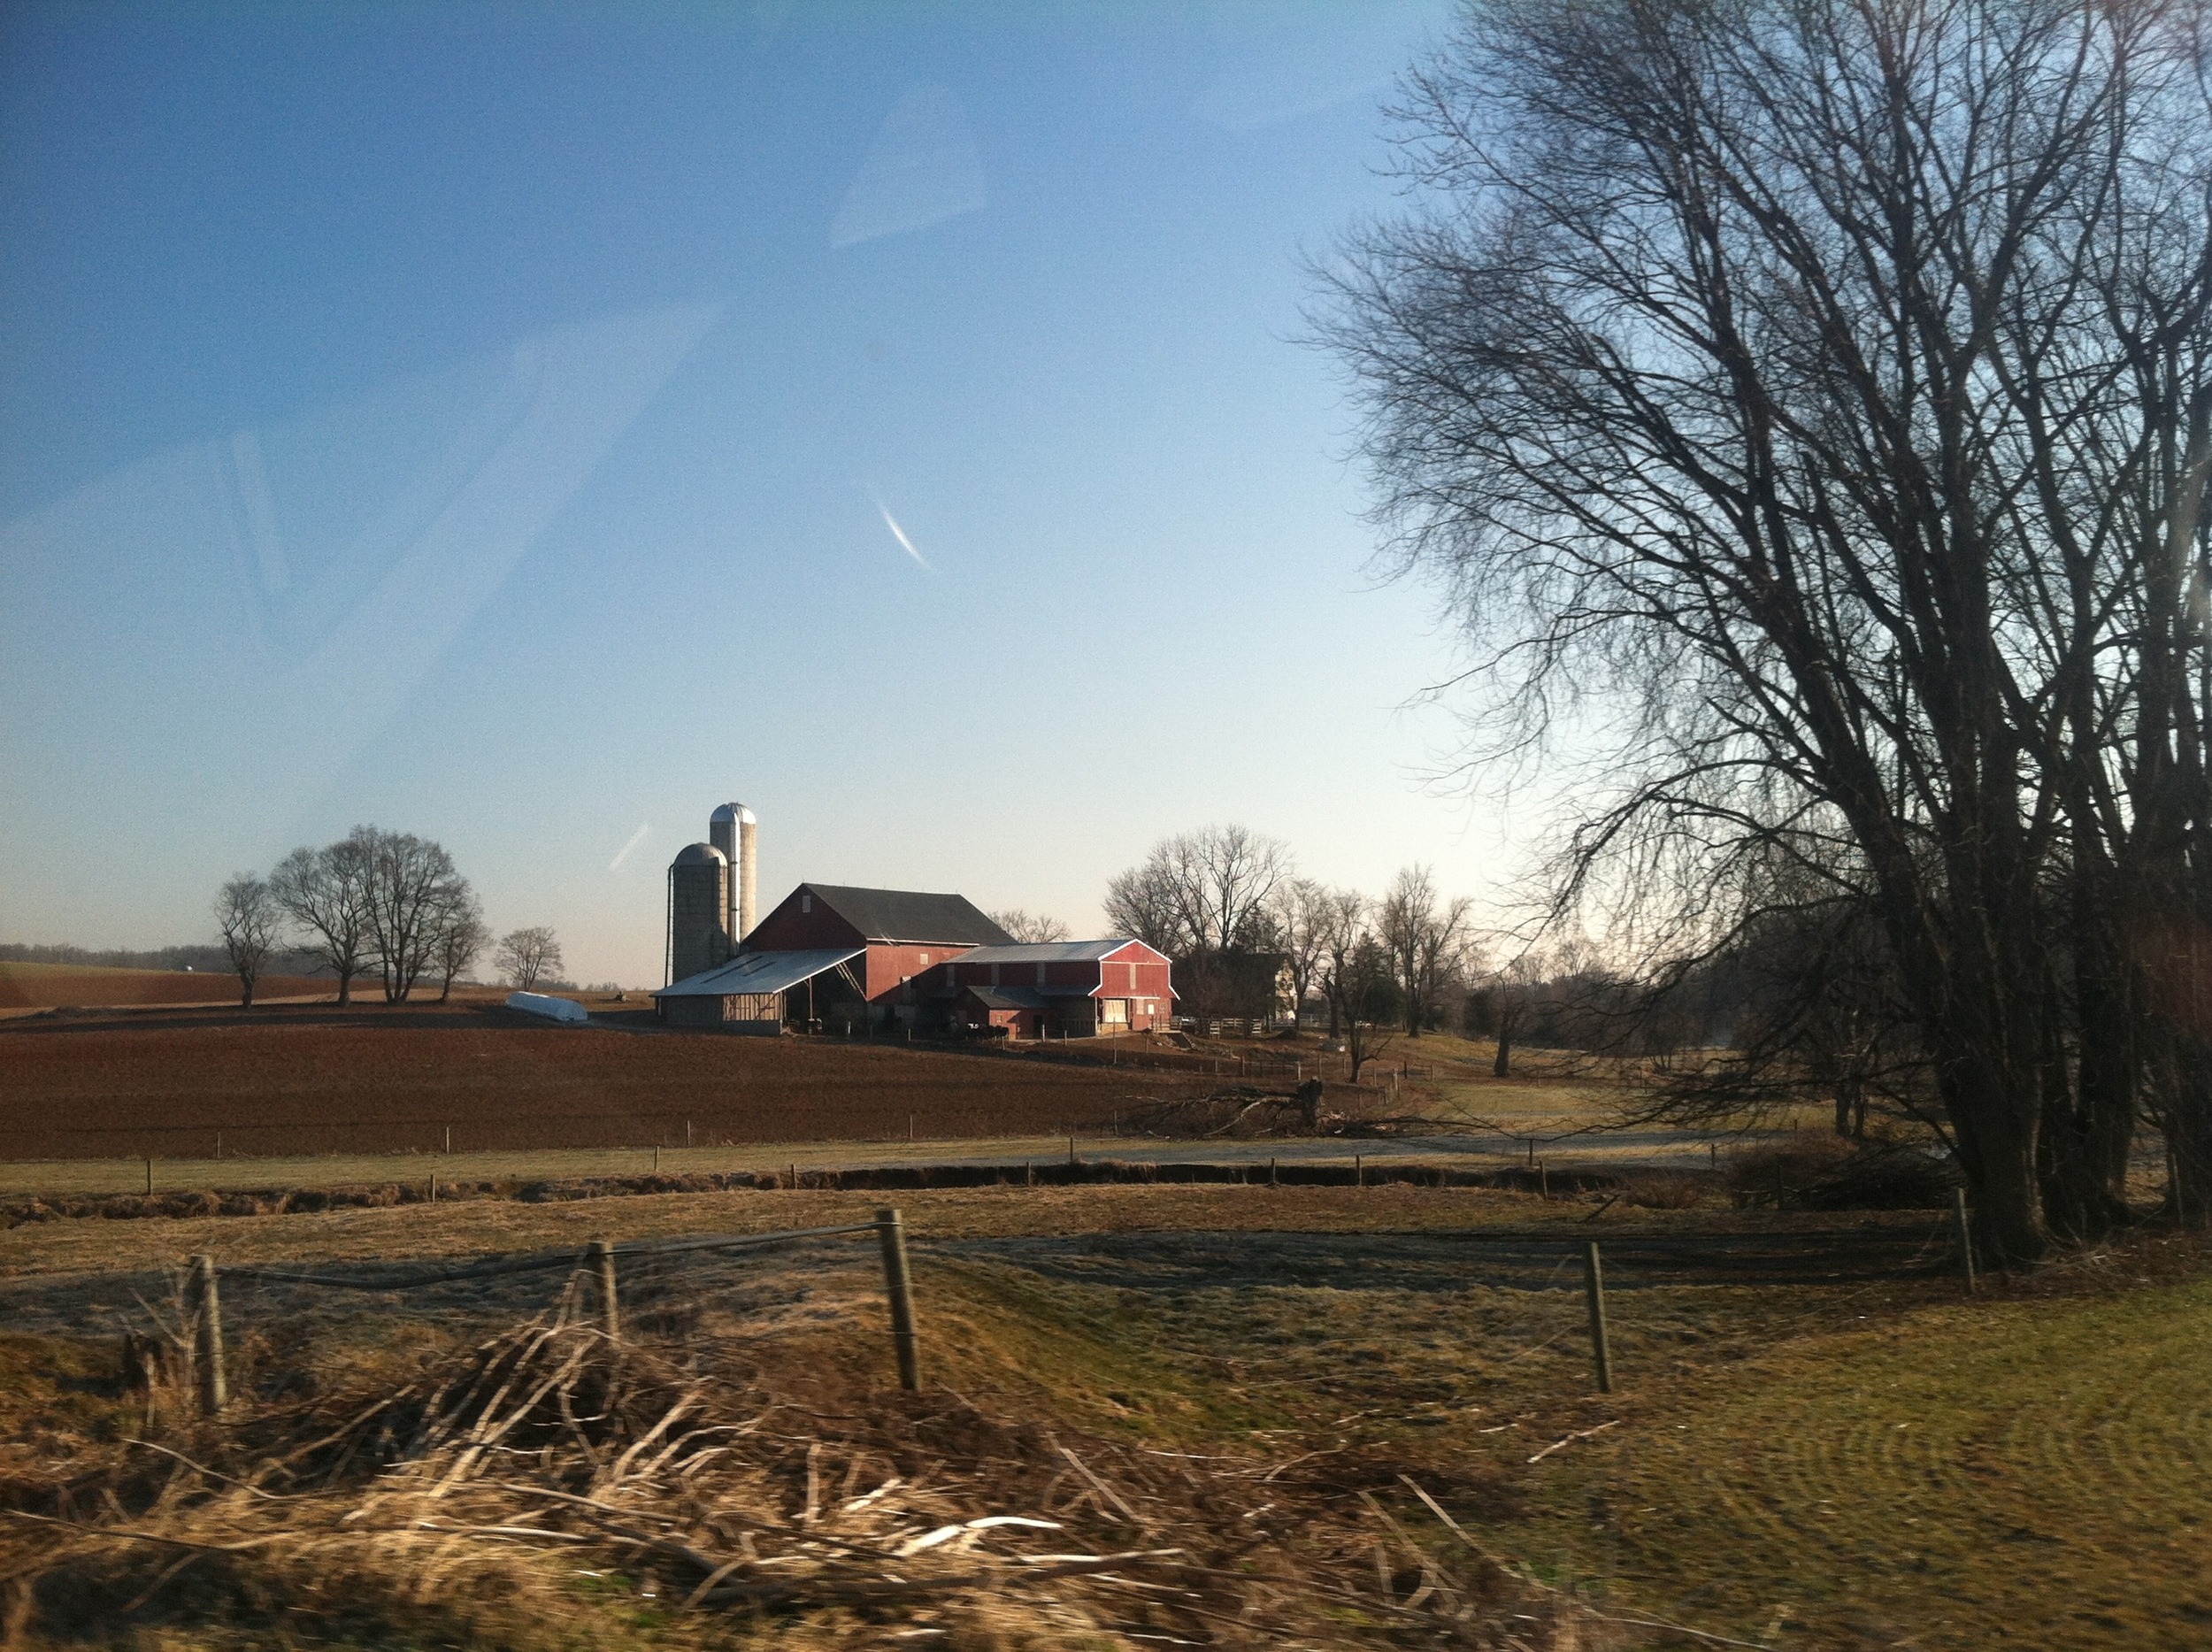 Amish country means lots of barns!